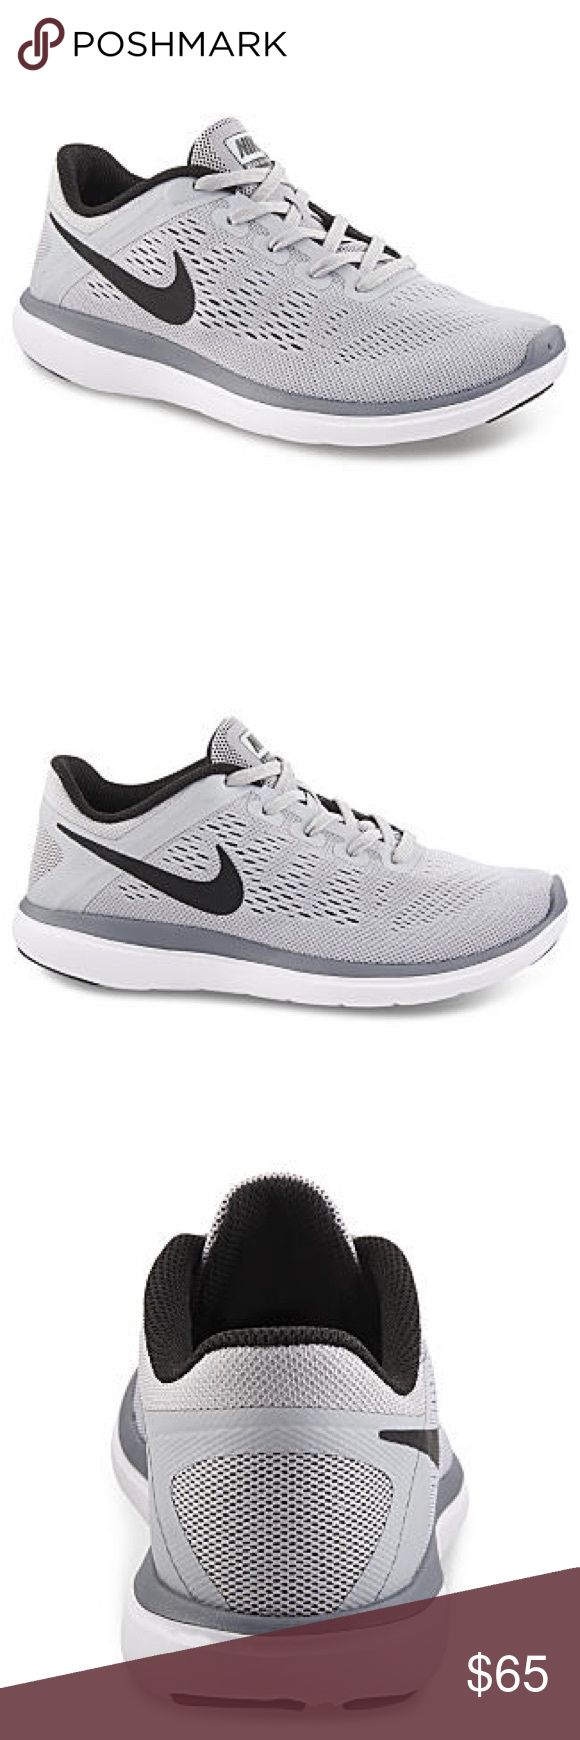 Nike women's running shoes size 7.5 grey black new Brand new without box. Size 6 youth which is a women's size 7.5. I have added a sizing chart for your Convenience.     Nike Flex 2016 Run Running Shoe  Flexibility and breathable comfort combine to create the Flex 2016 Run boys' running shoe by Nike. Breathe Tech construction fuses foam and mesh to keep things light, while the outsole's flex grooves help the foot move the way it was meant to. A pressure-mapped Phylon® midsole provides…